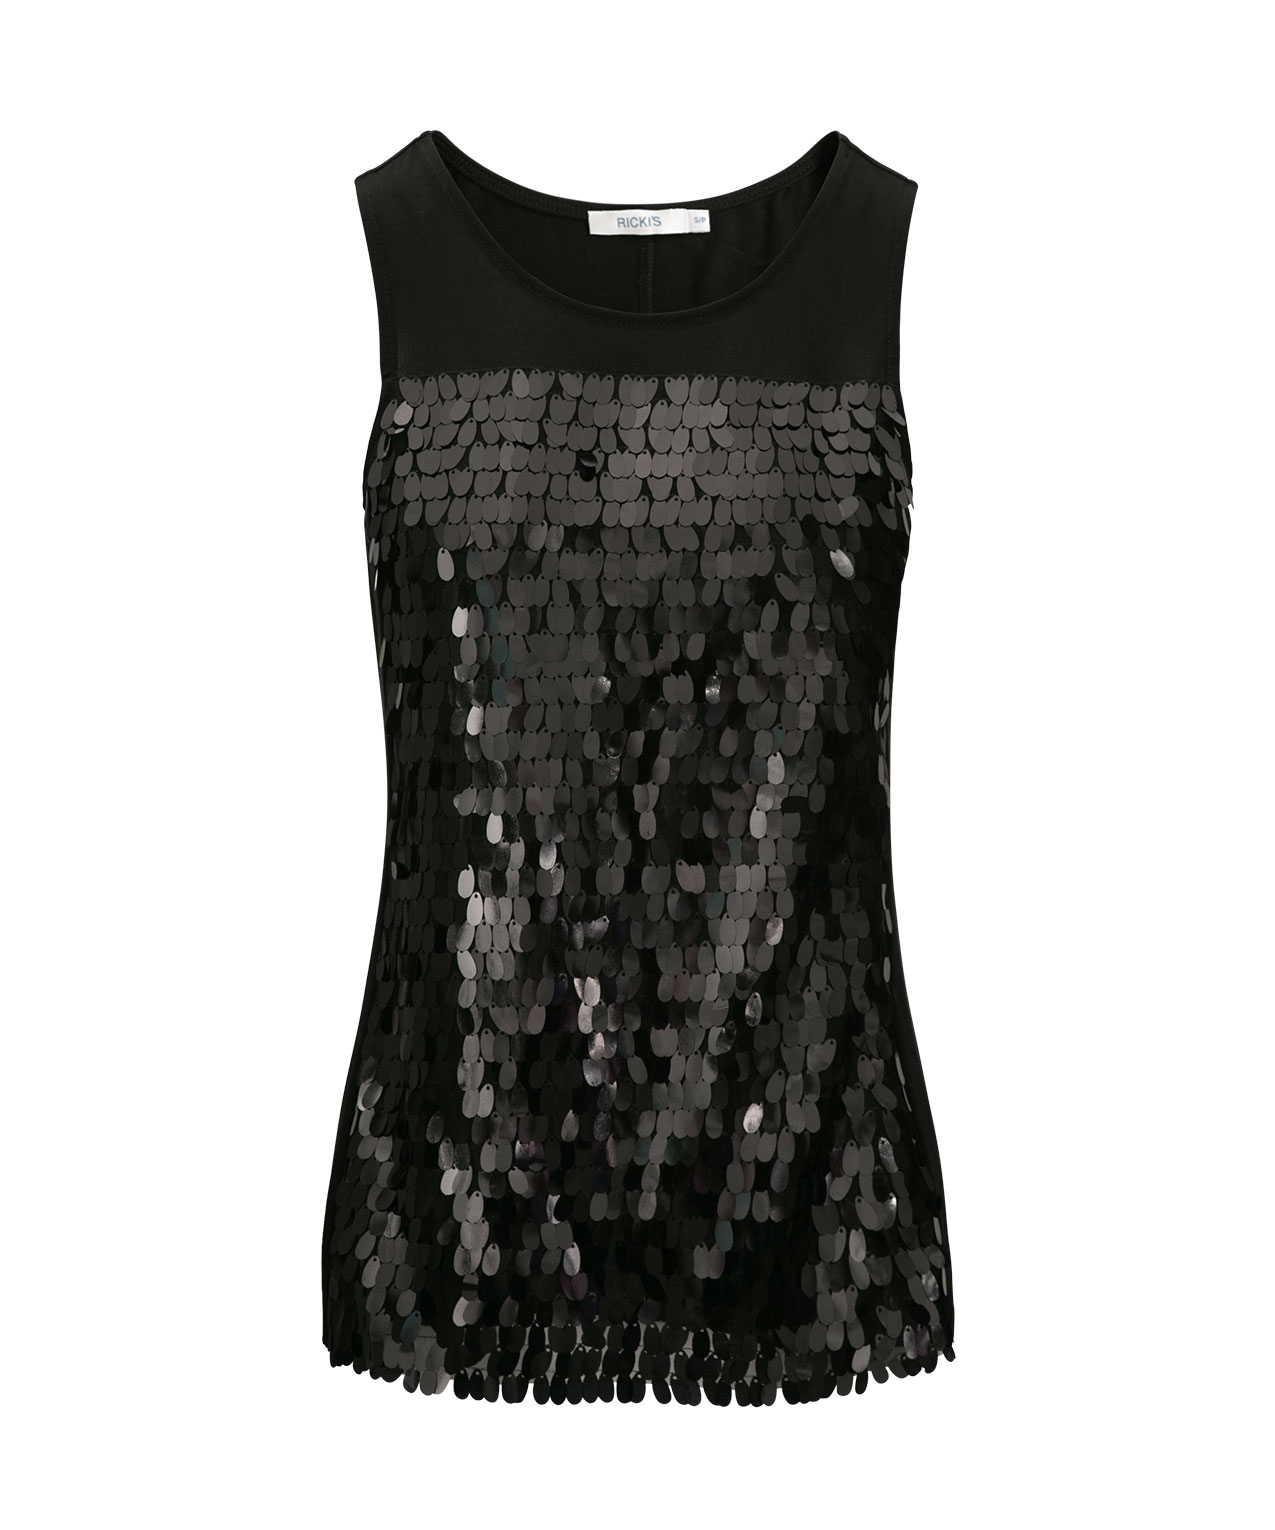 9f49d7fdc5400 Sleeveless Sequin Front Top